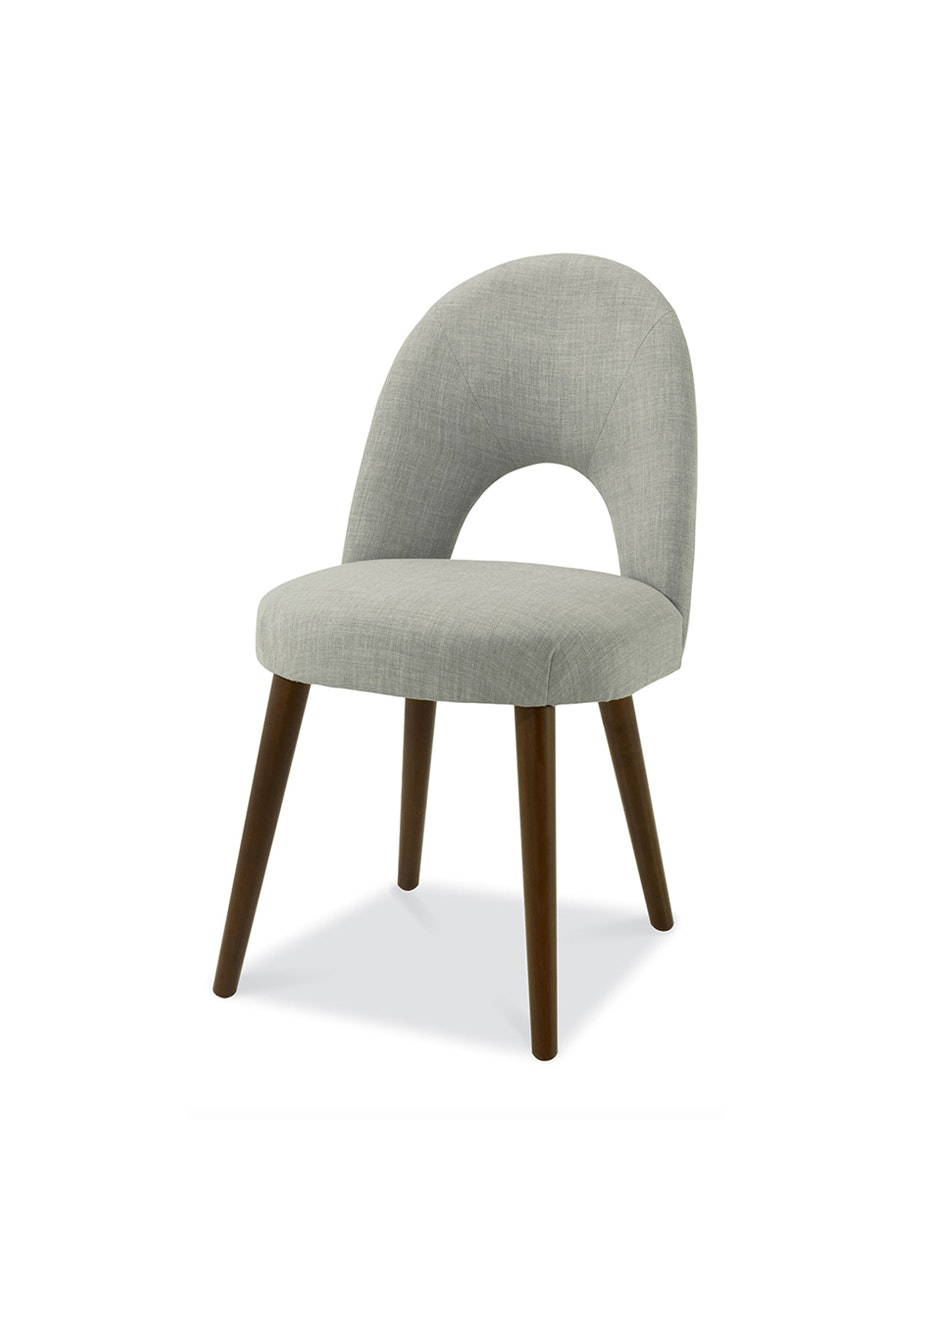 Furniture By Design - Oslo Chair- Walnut and Linen